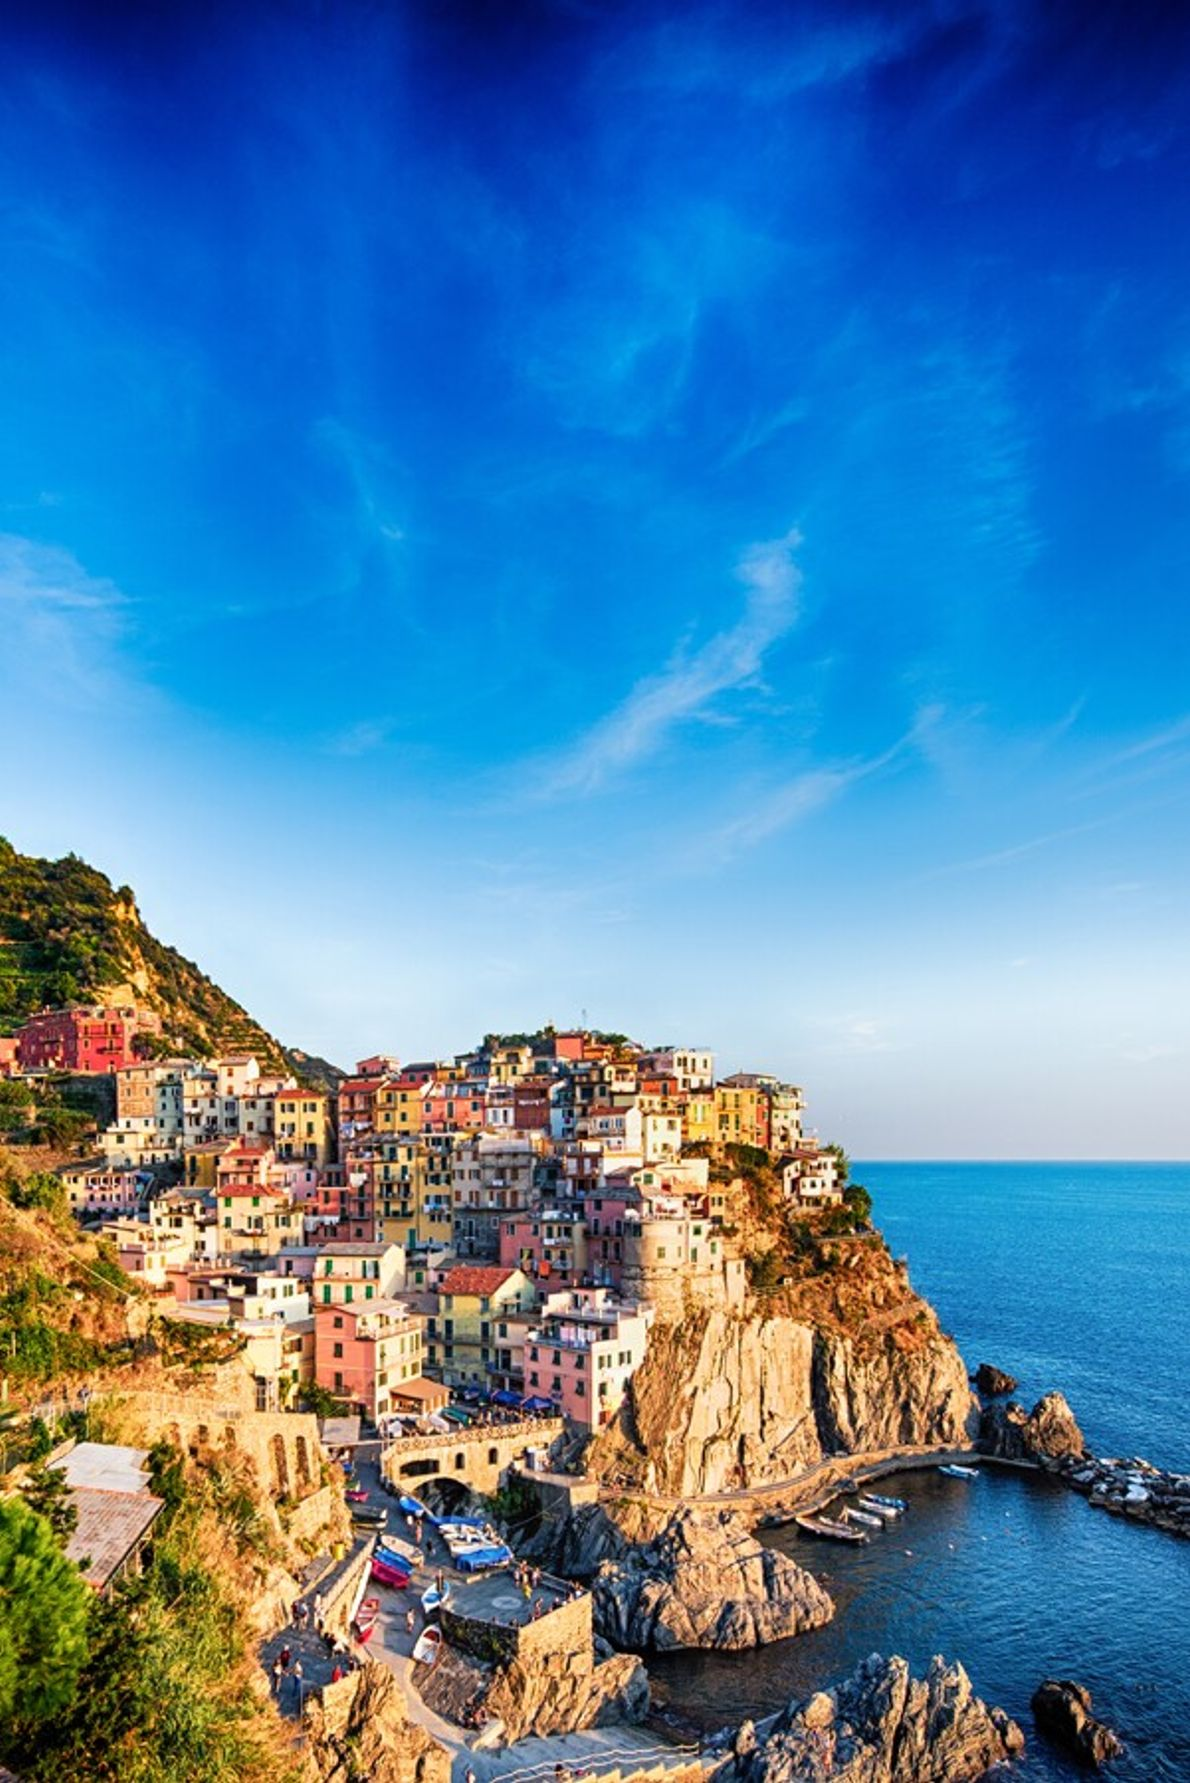 Manarola is one of the 'Cinque Terre' (five towns) on the Ligurian coast, south-east of Genoa. The region's ...